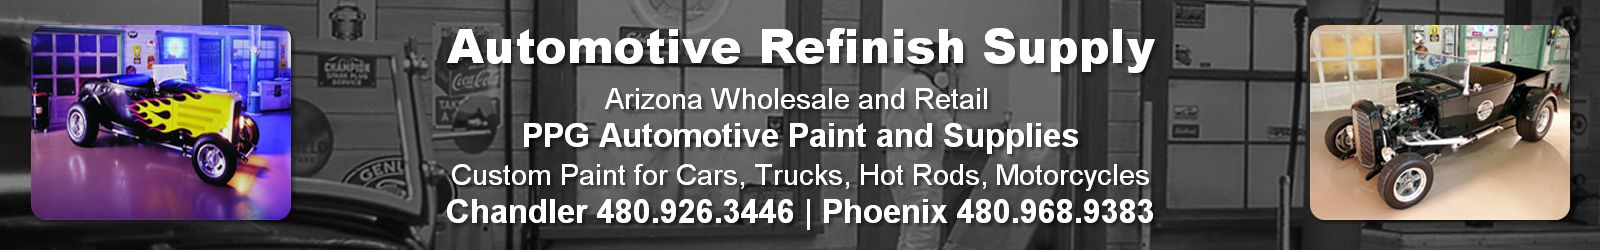 Automotive Refinish Supply - Chandler, Arizona